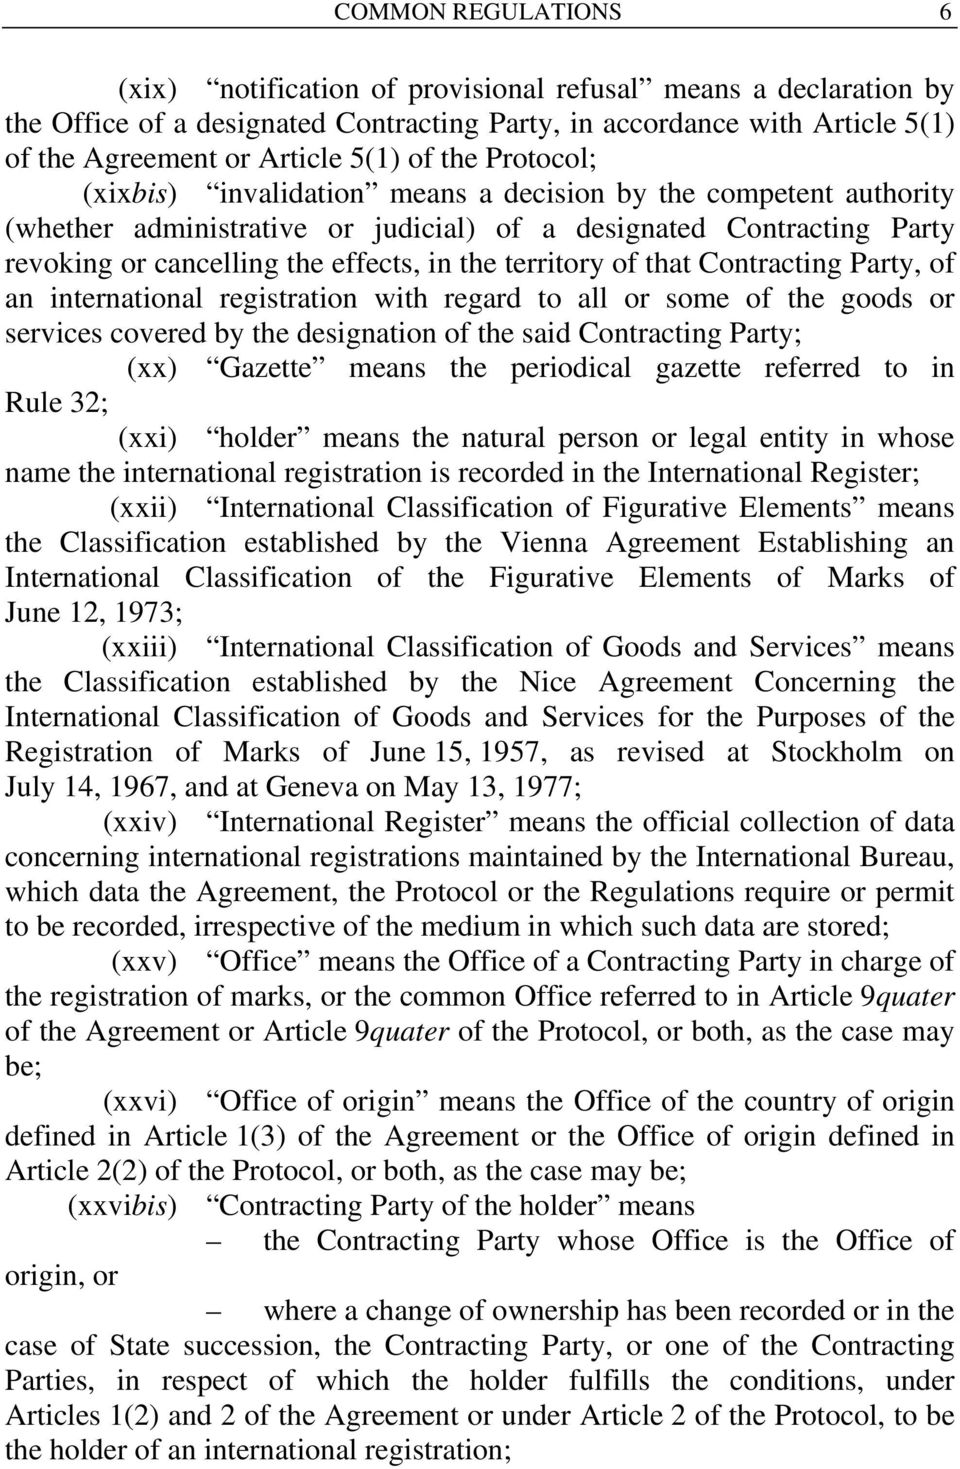 territory of that Contracting Party, of an international registration with regard to all or some of the goods or services covered by the designation of the said Contracting Party; (xx) Gazette means